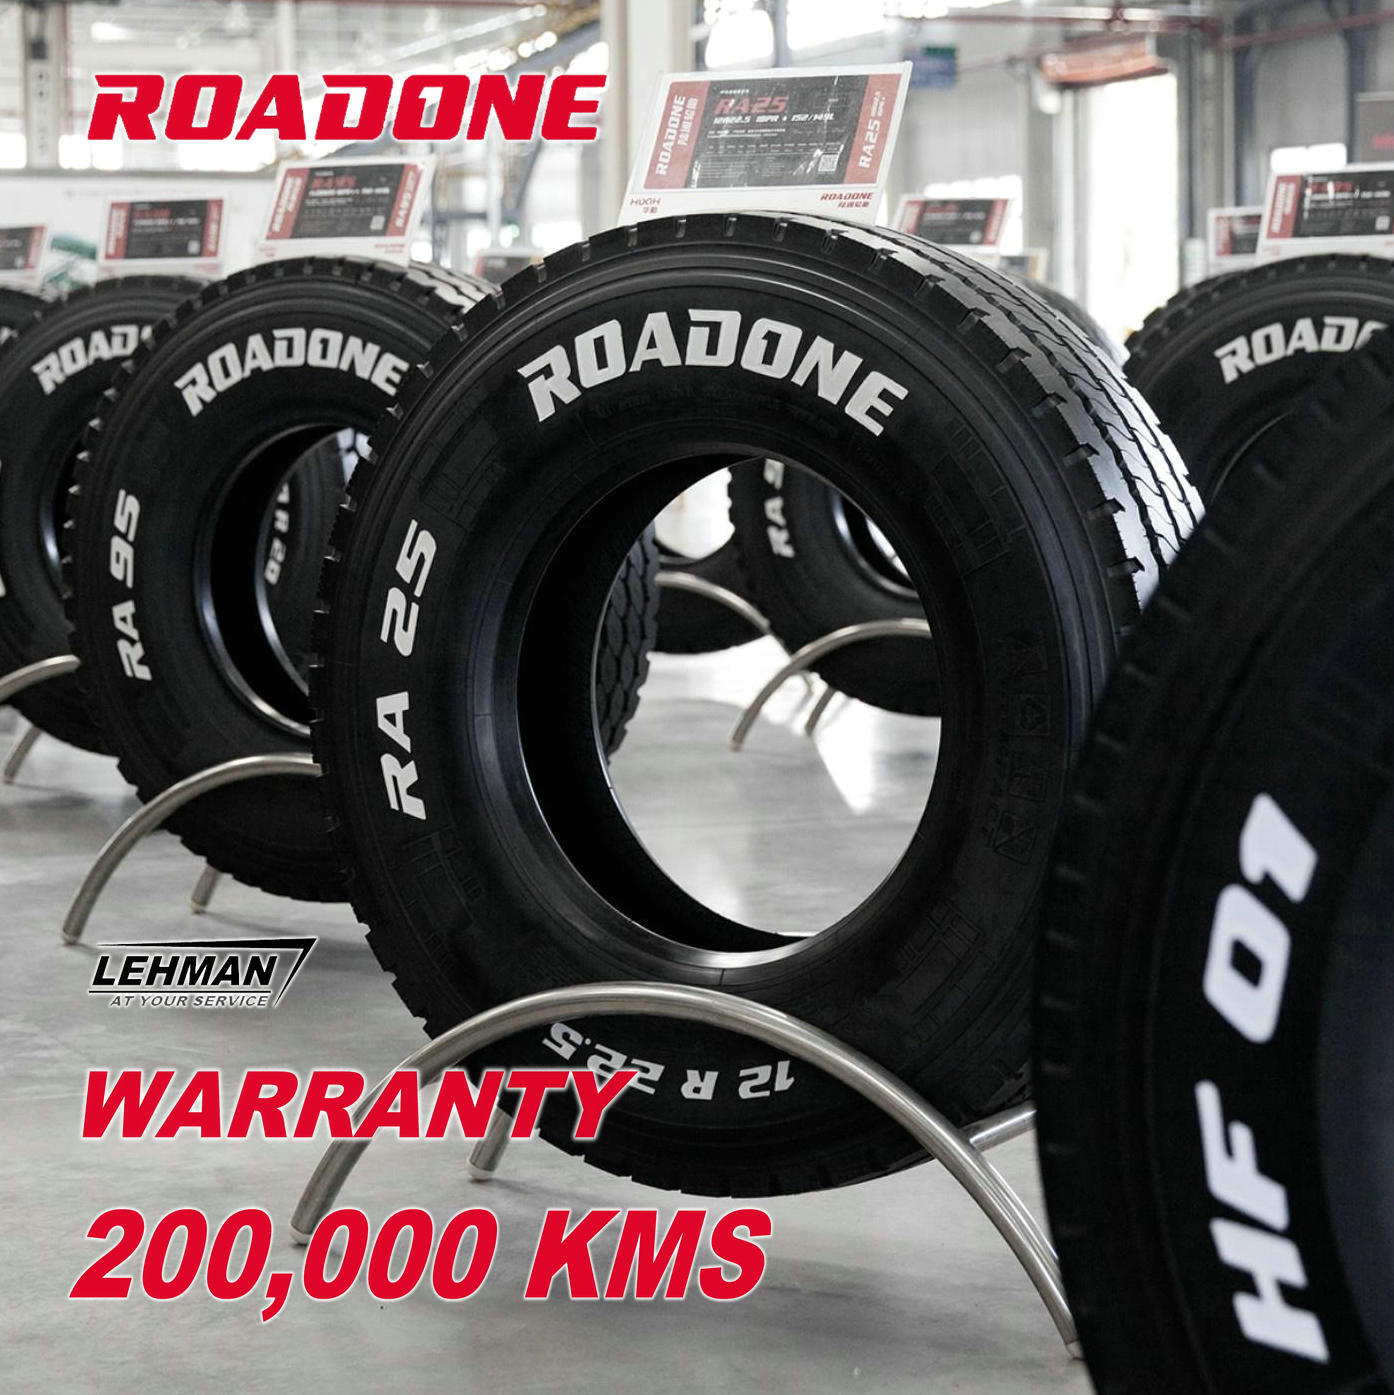 Tires For Cheap >> China Timax Commercial Truck Tires Cheap Price R22 5 R24 5 11r24 5